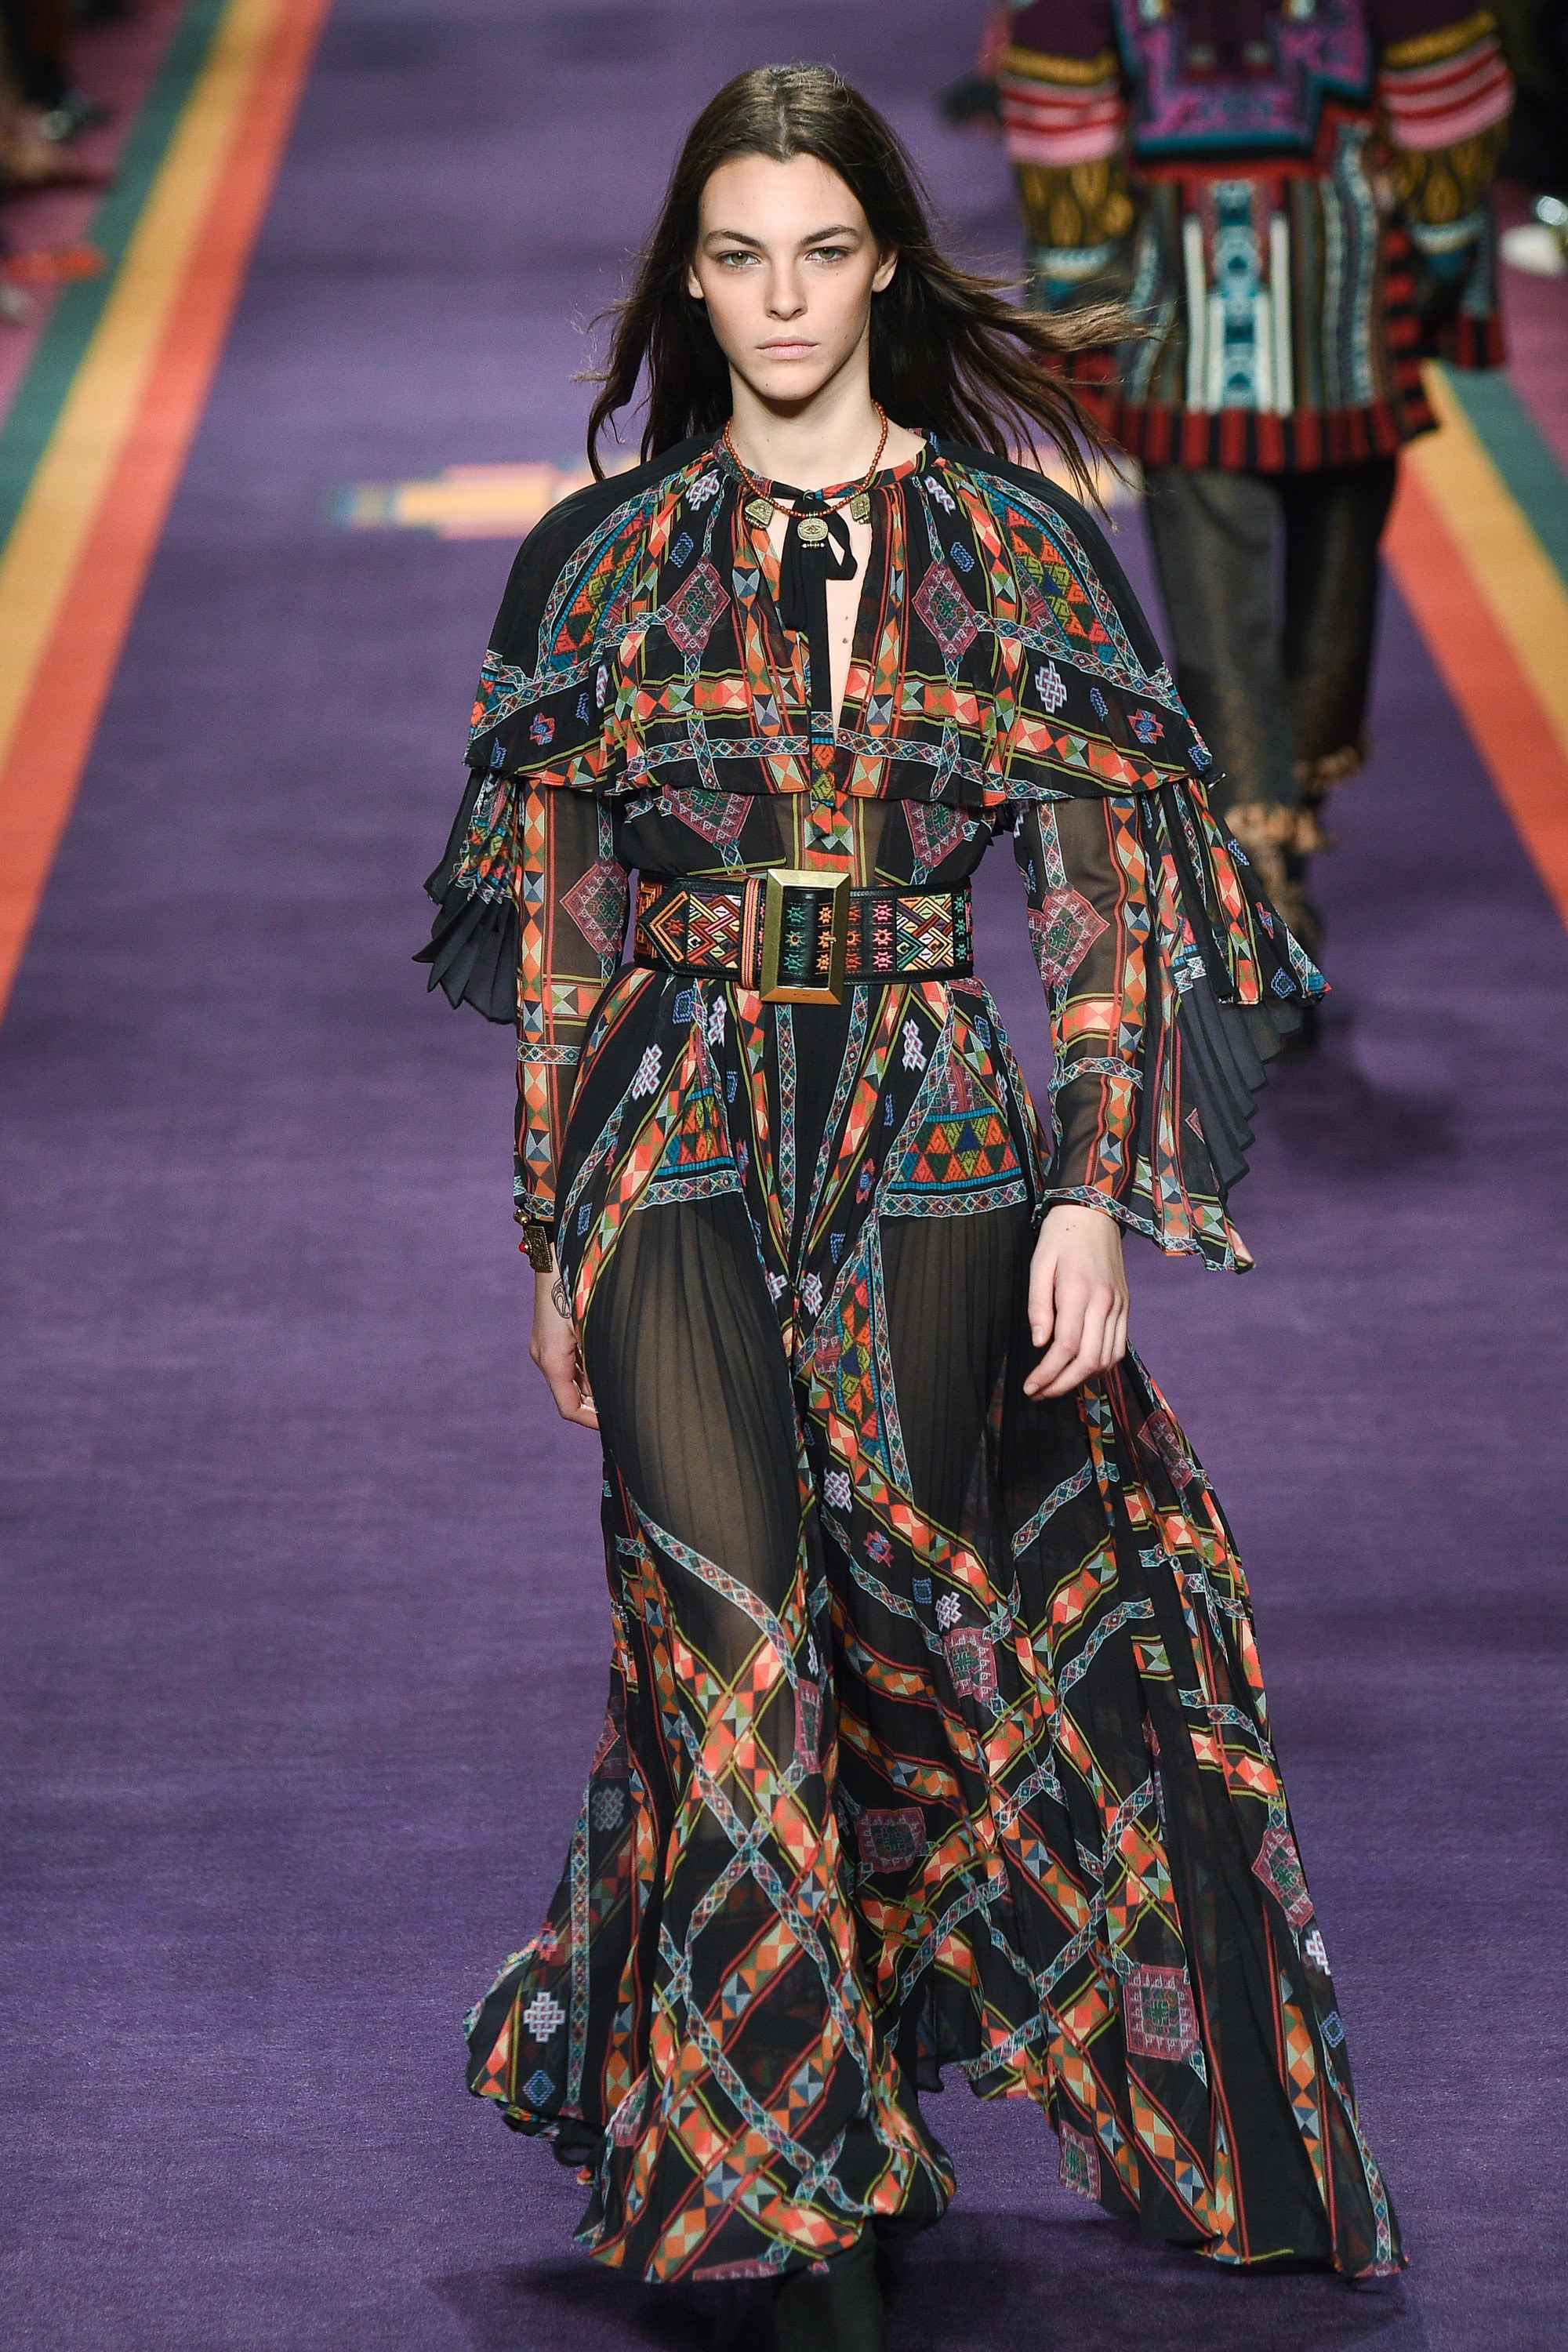 ETRO  - while black is not our pick for a bride, the tapestry-ribbon detail is the beautiful point of interest this boho dress